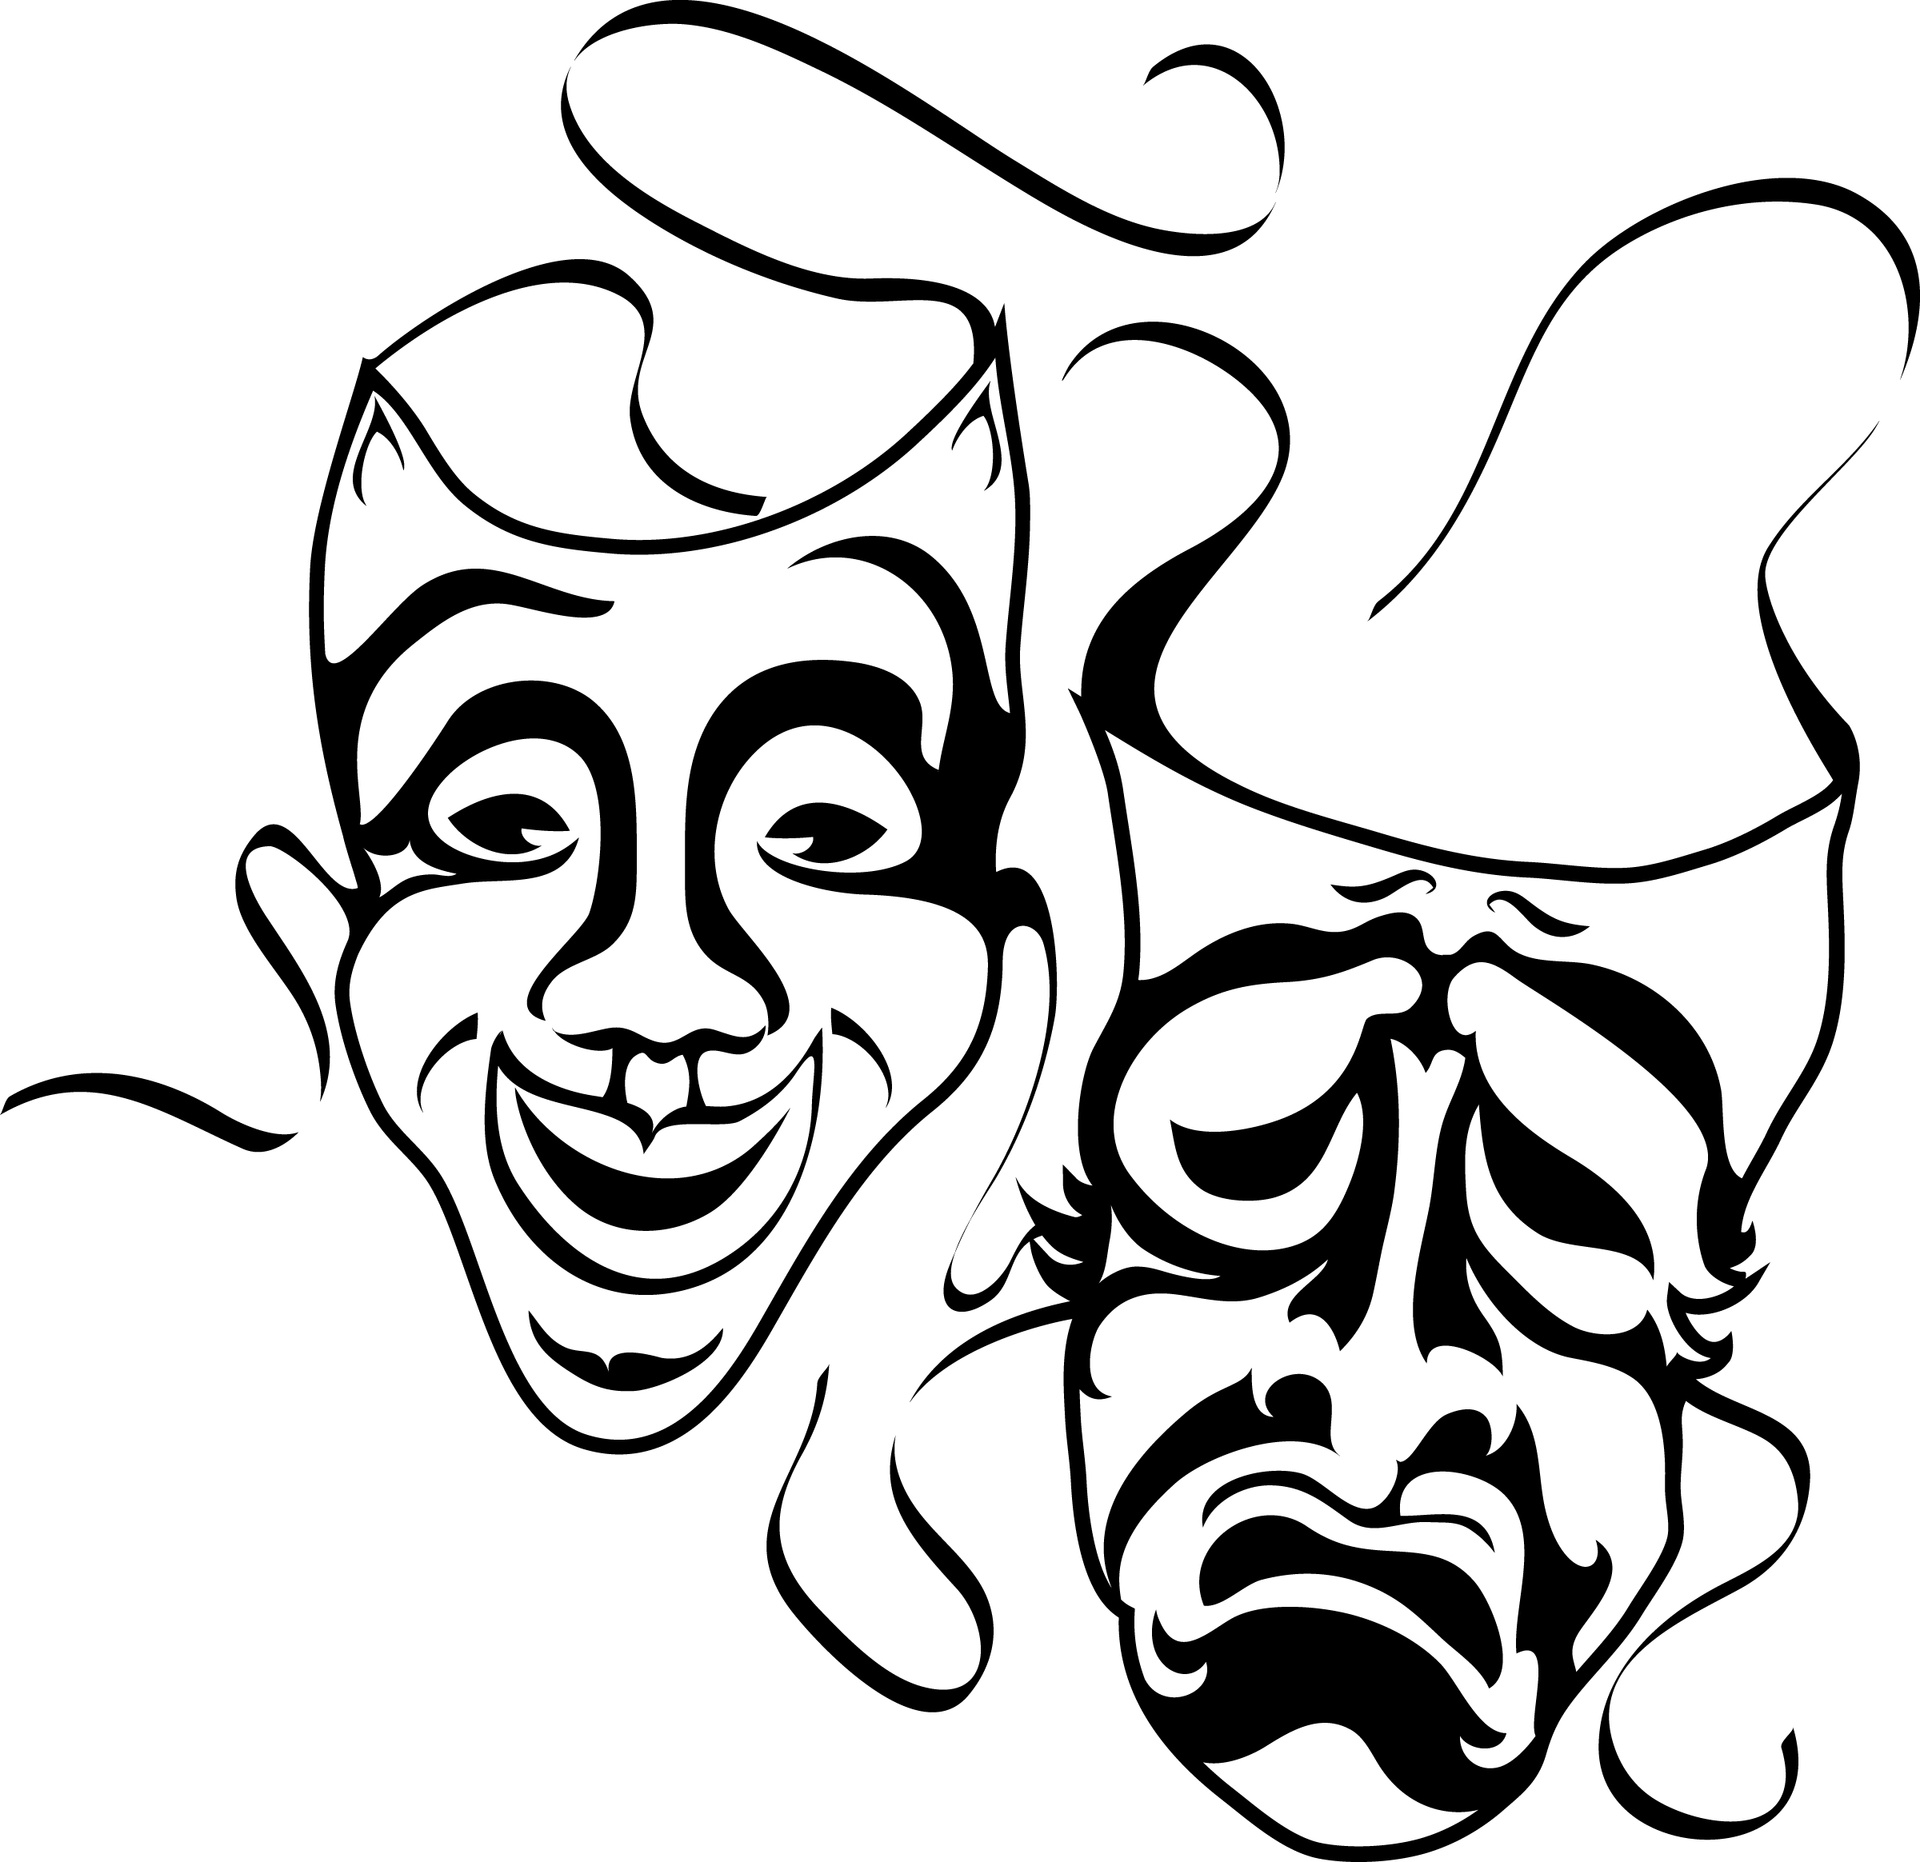 Tradgey and comedy mask black and white clipart clipart free library Theatre Faces Clipart   Free download best Theatre Faces ... clipart free library